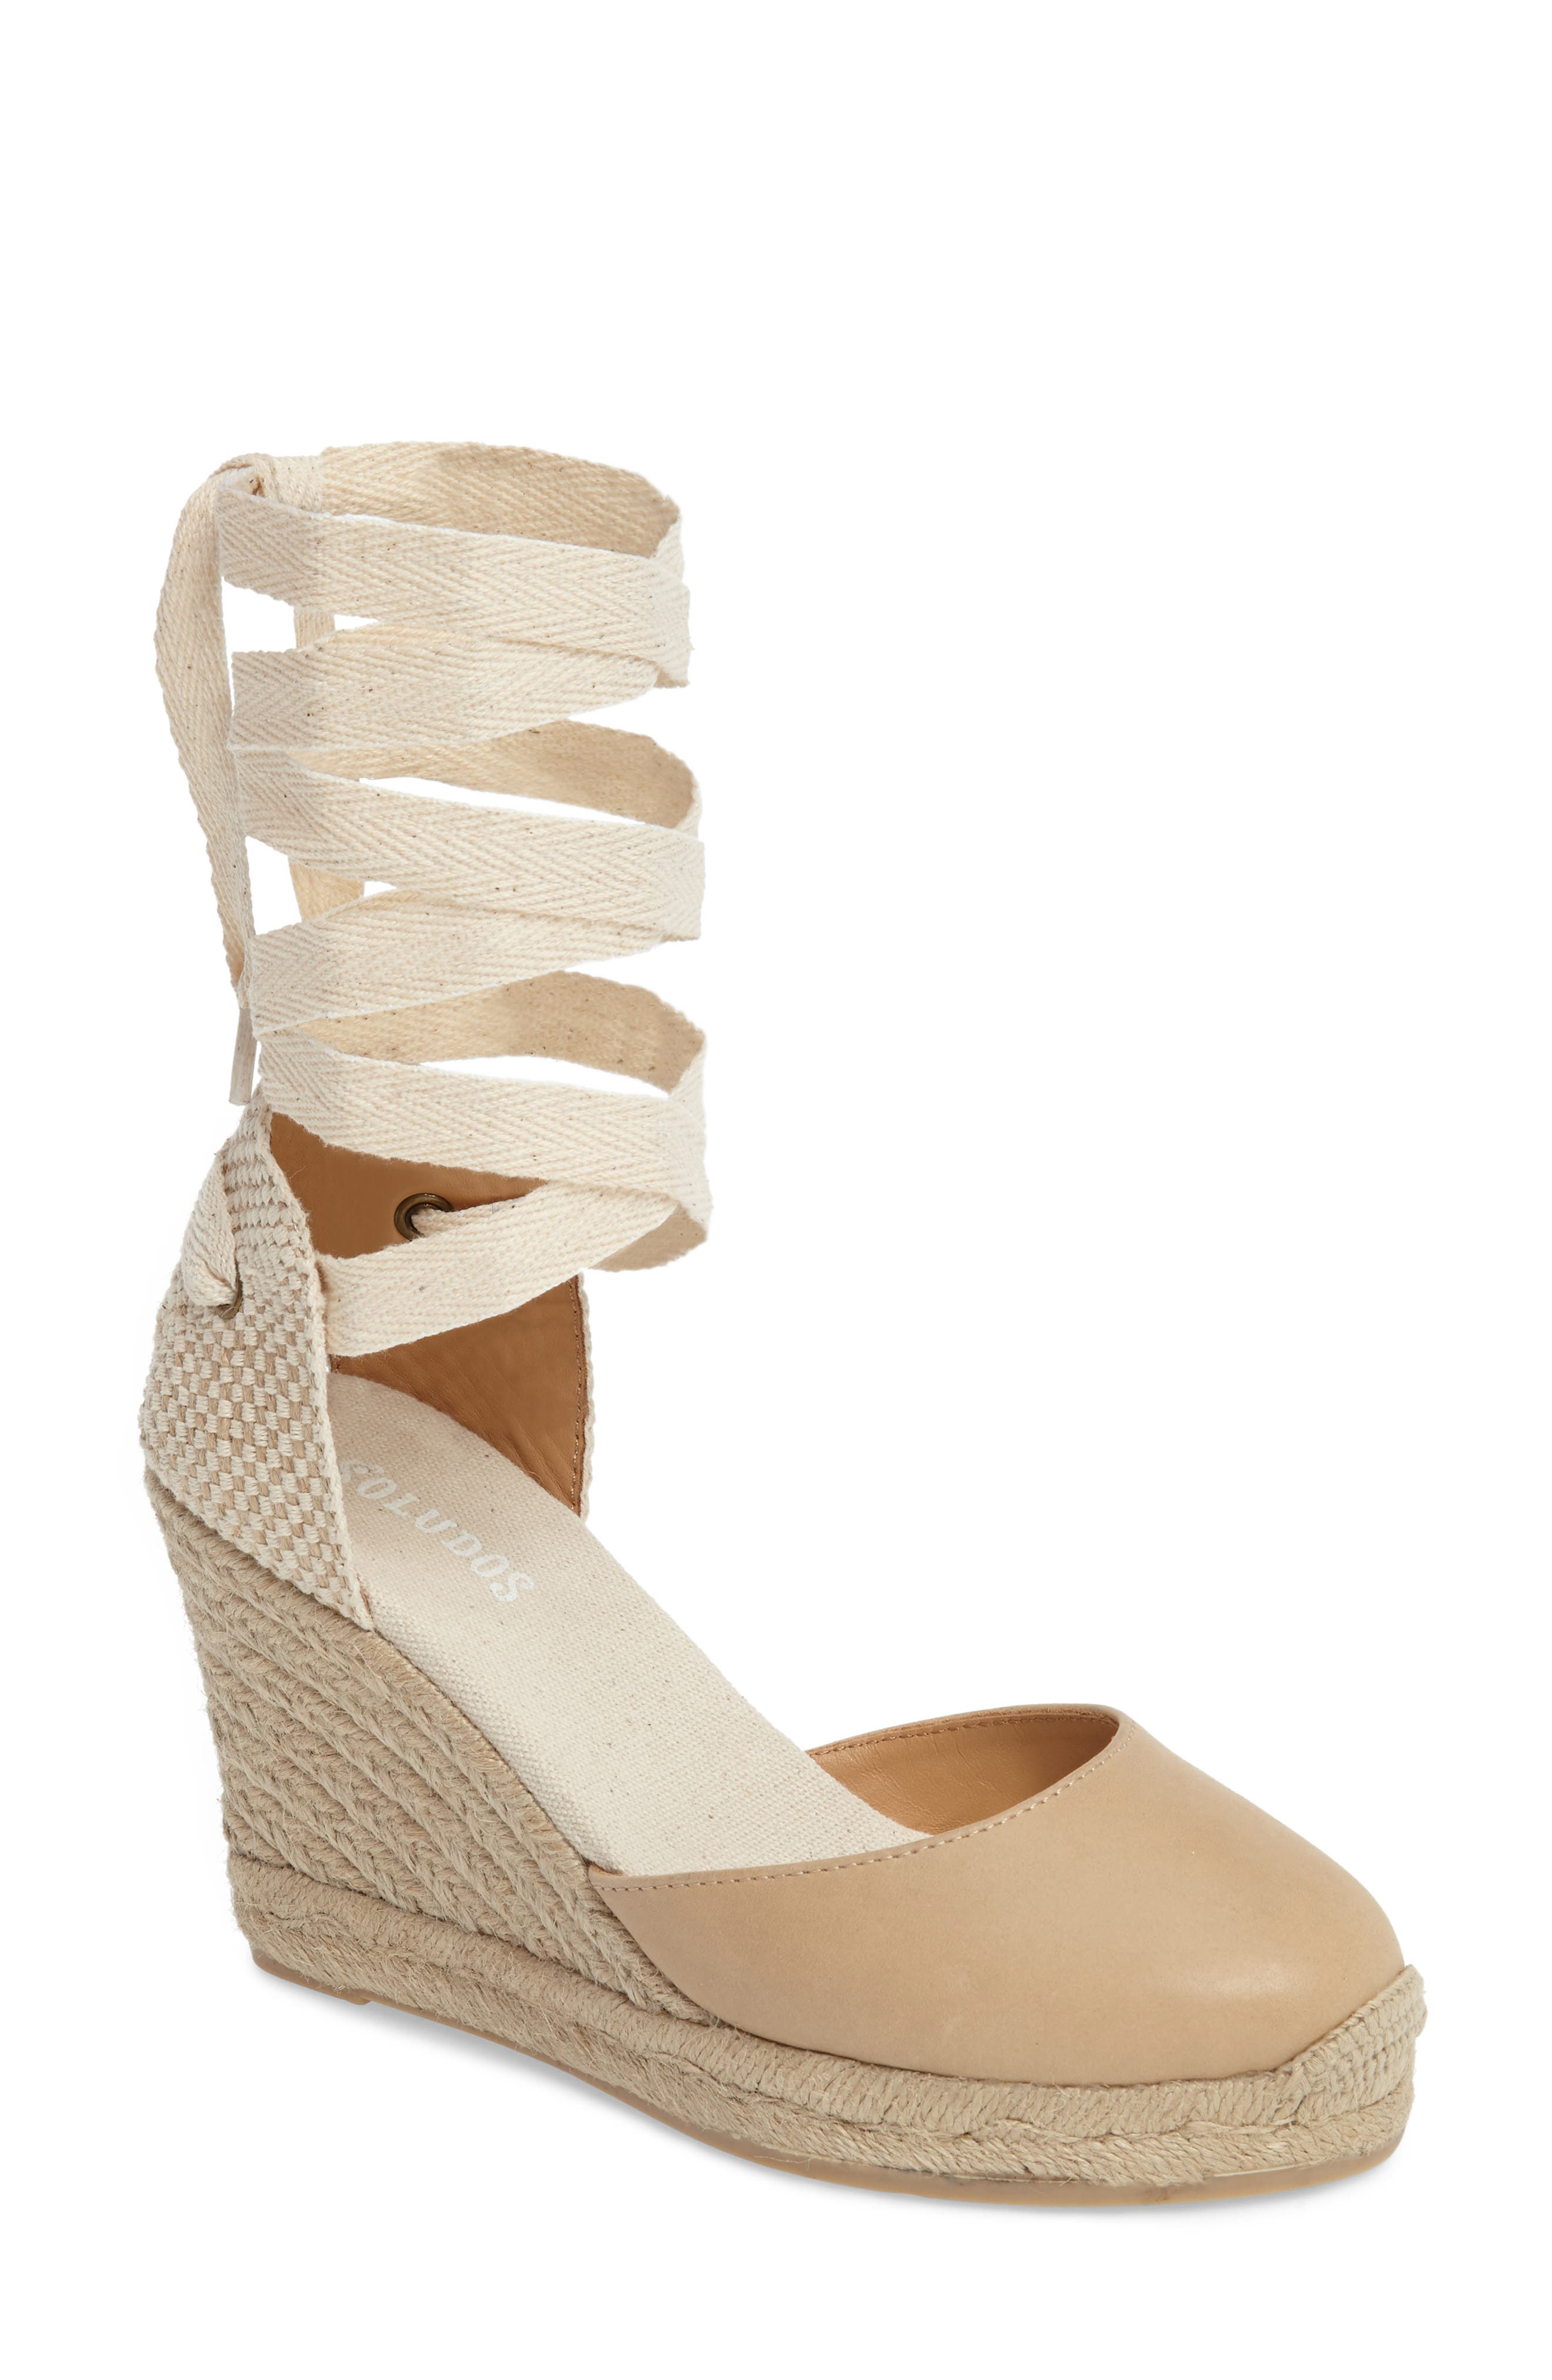 Soludos Lace-Up Espadrille Wedge (Women)